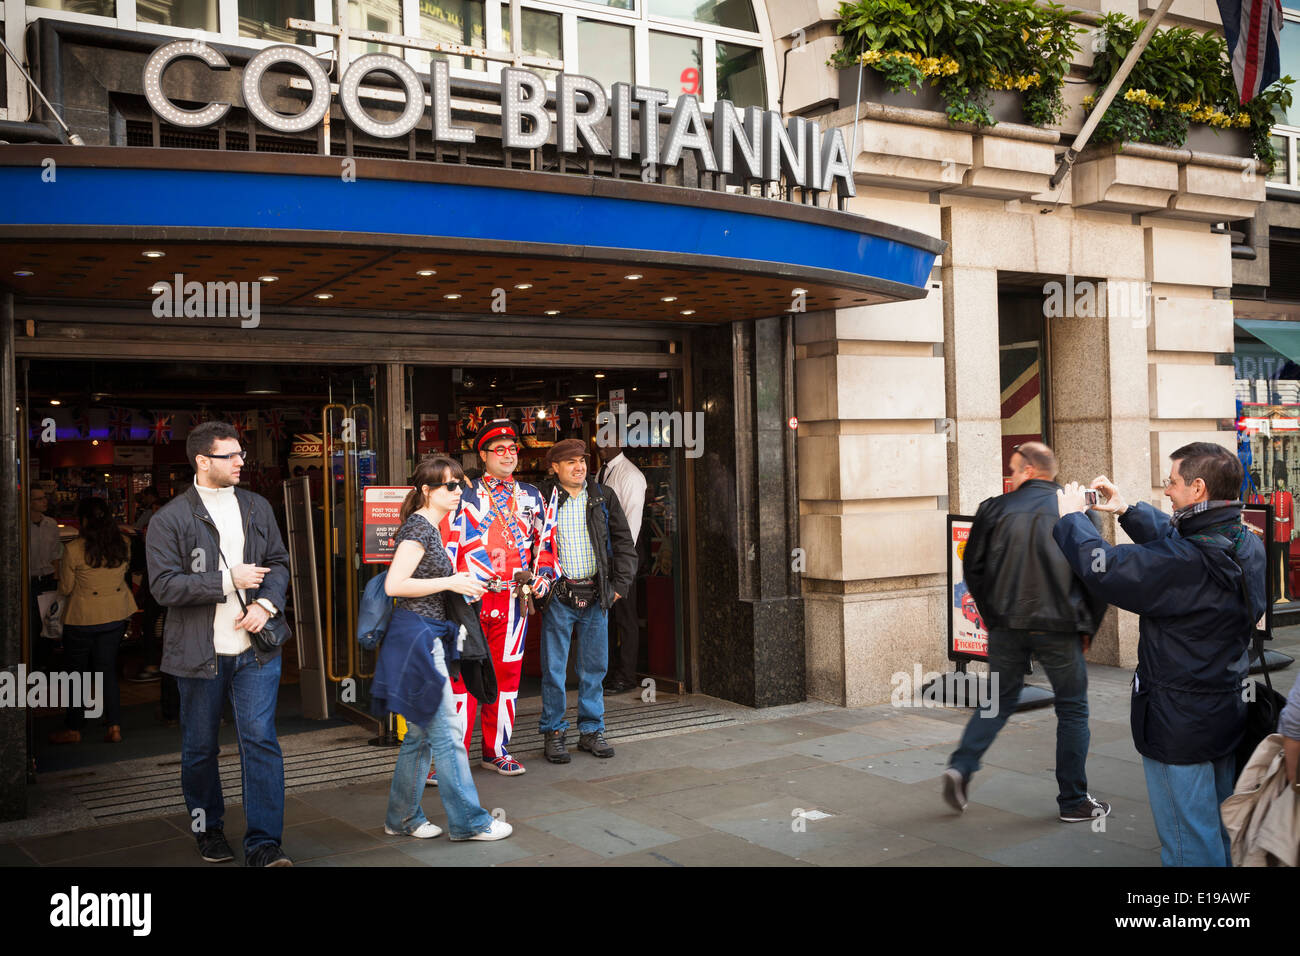 Tourists photographed with the door man at Cool Britannia in Piccadilly London. - Stock Image